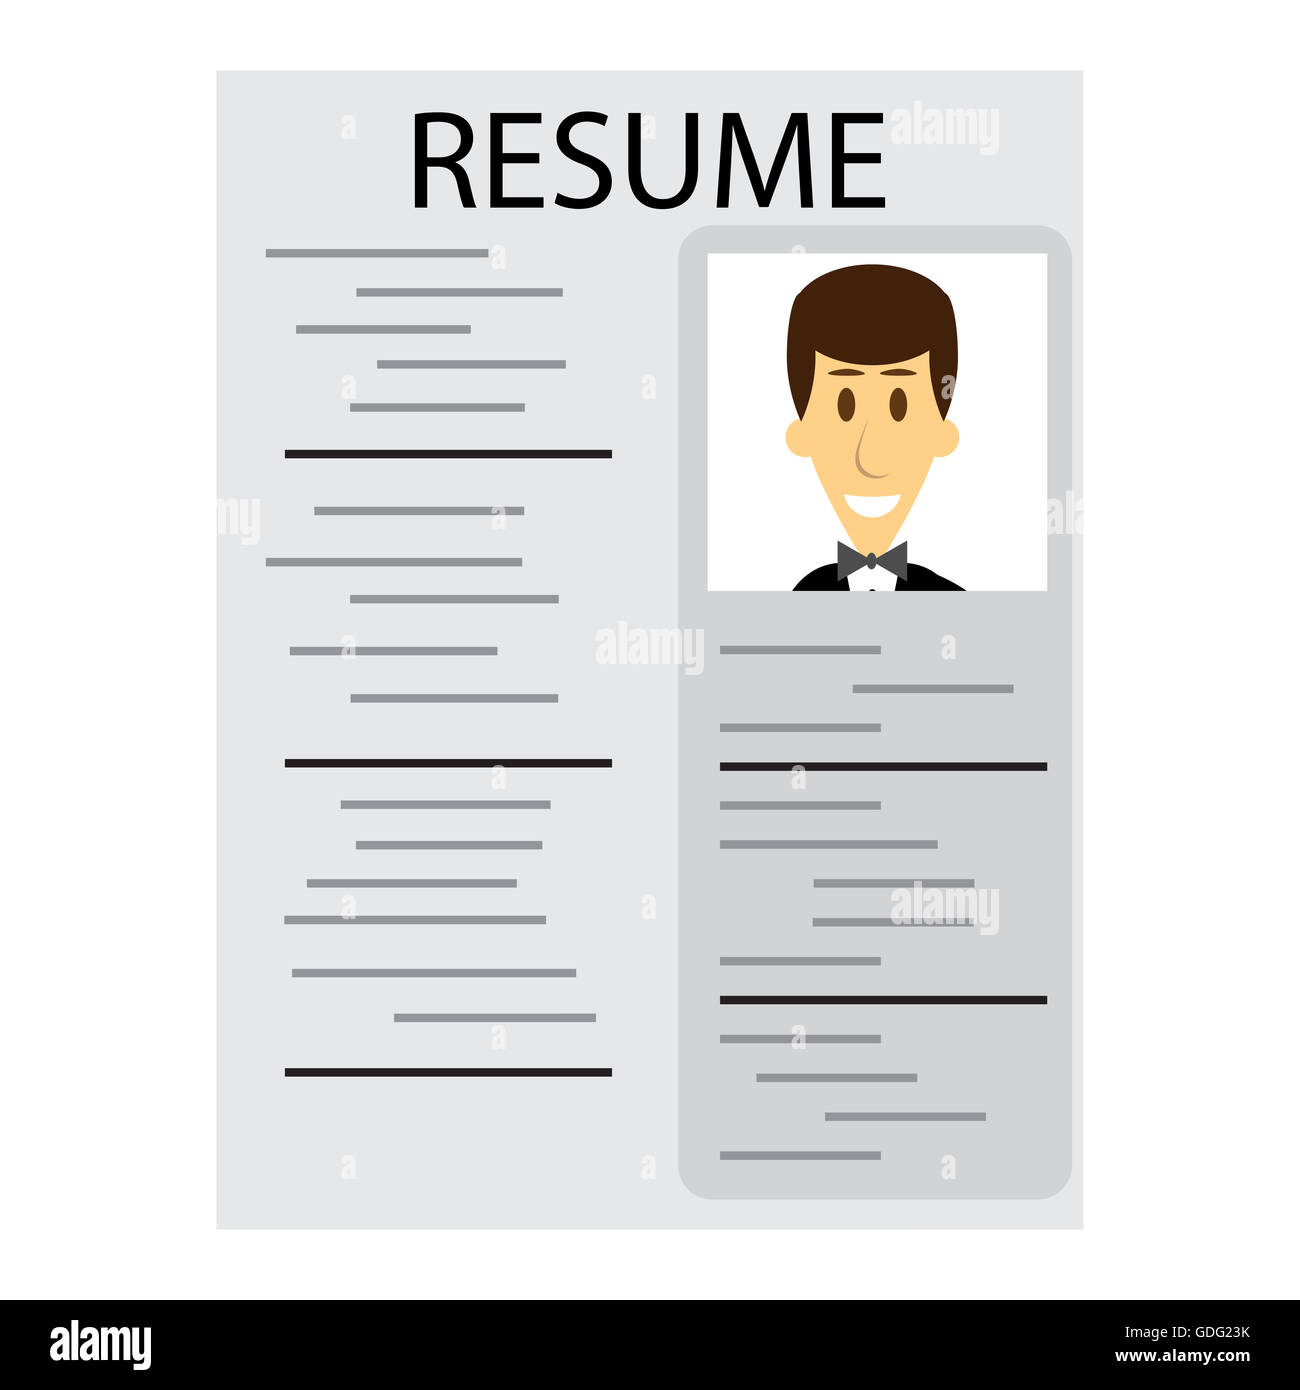 Resume for employment. Cv and resume template, job interview and ...